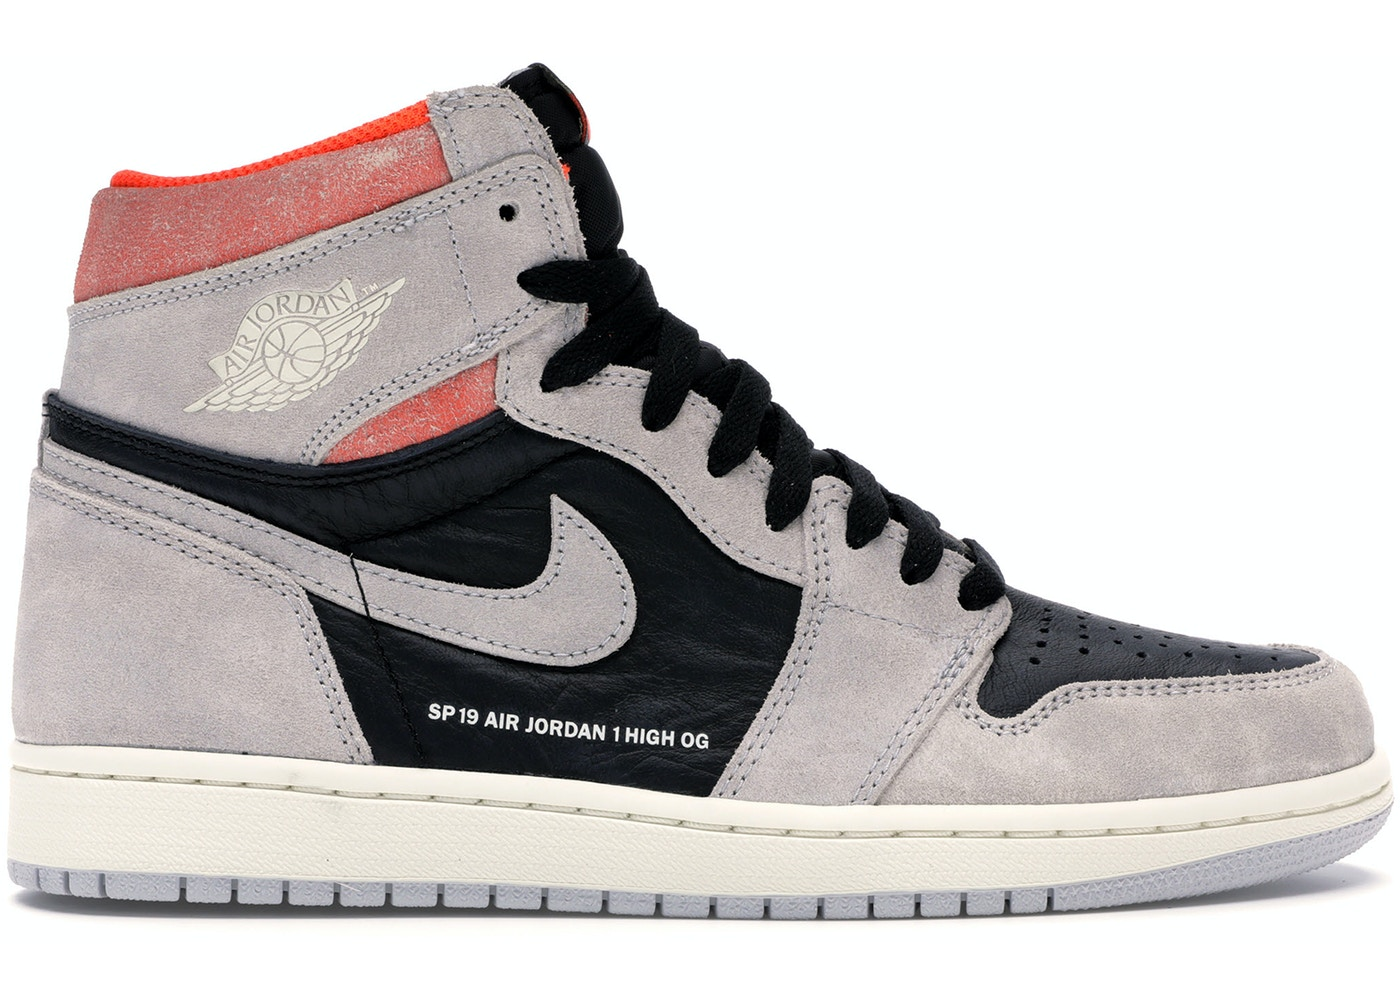 buy popular 2ce2c 0cd75 Jordan 1 Retro High Neutral Grey Hyper Crimson - 555088-018